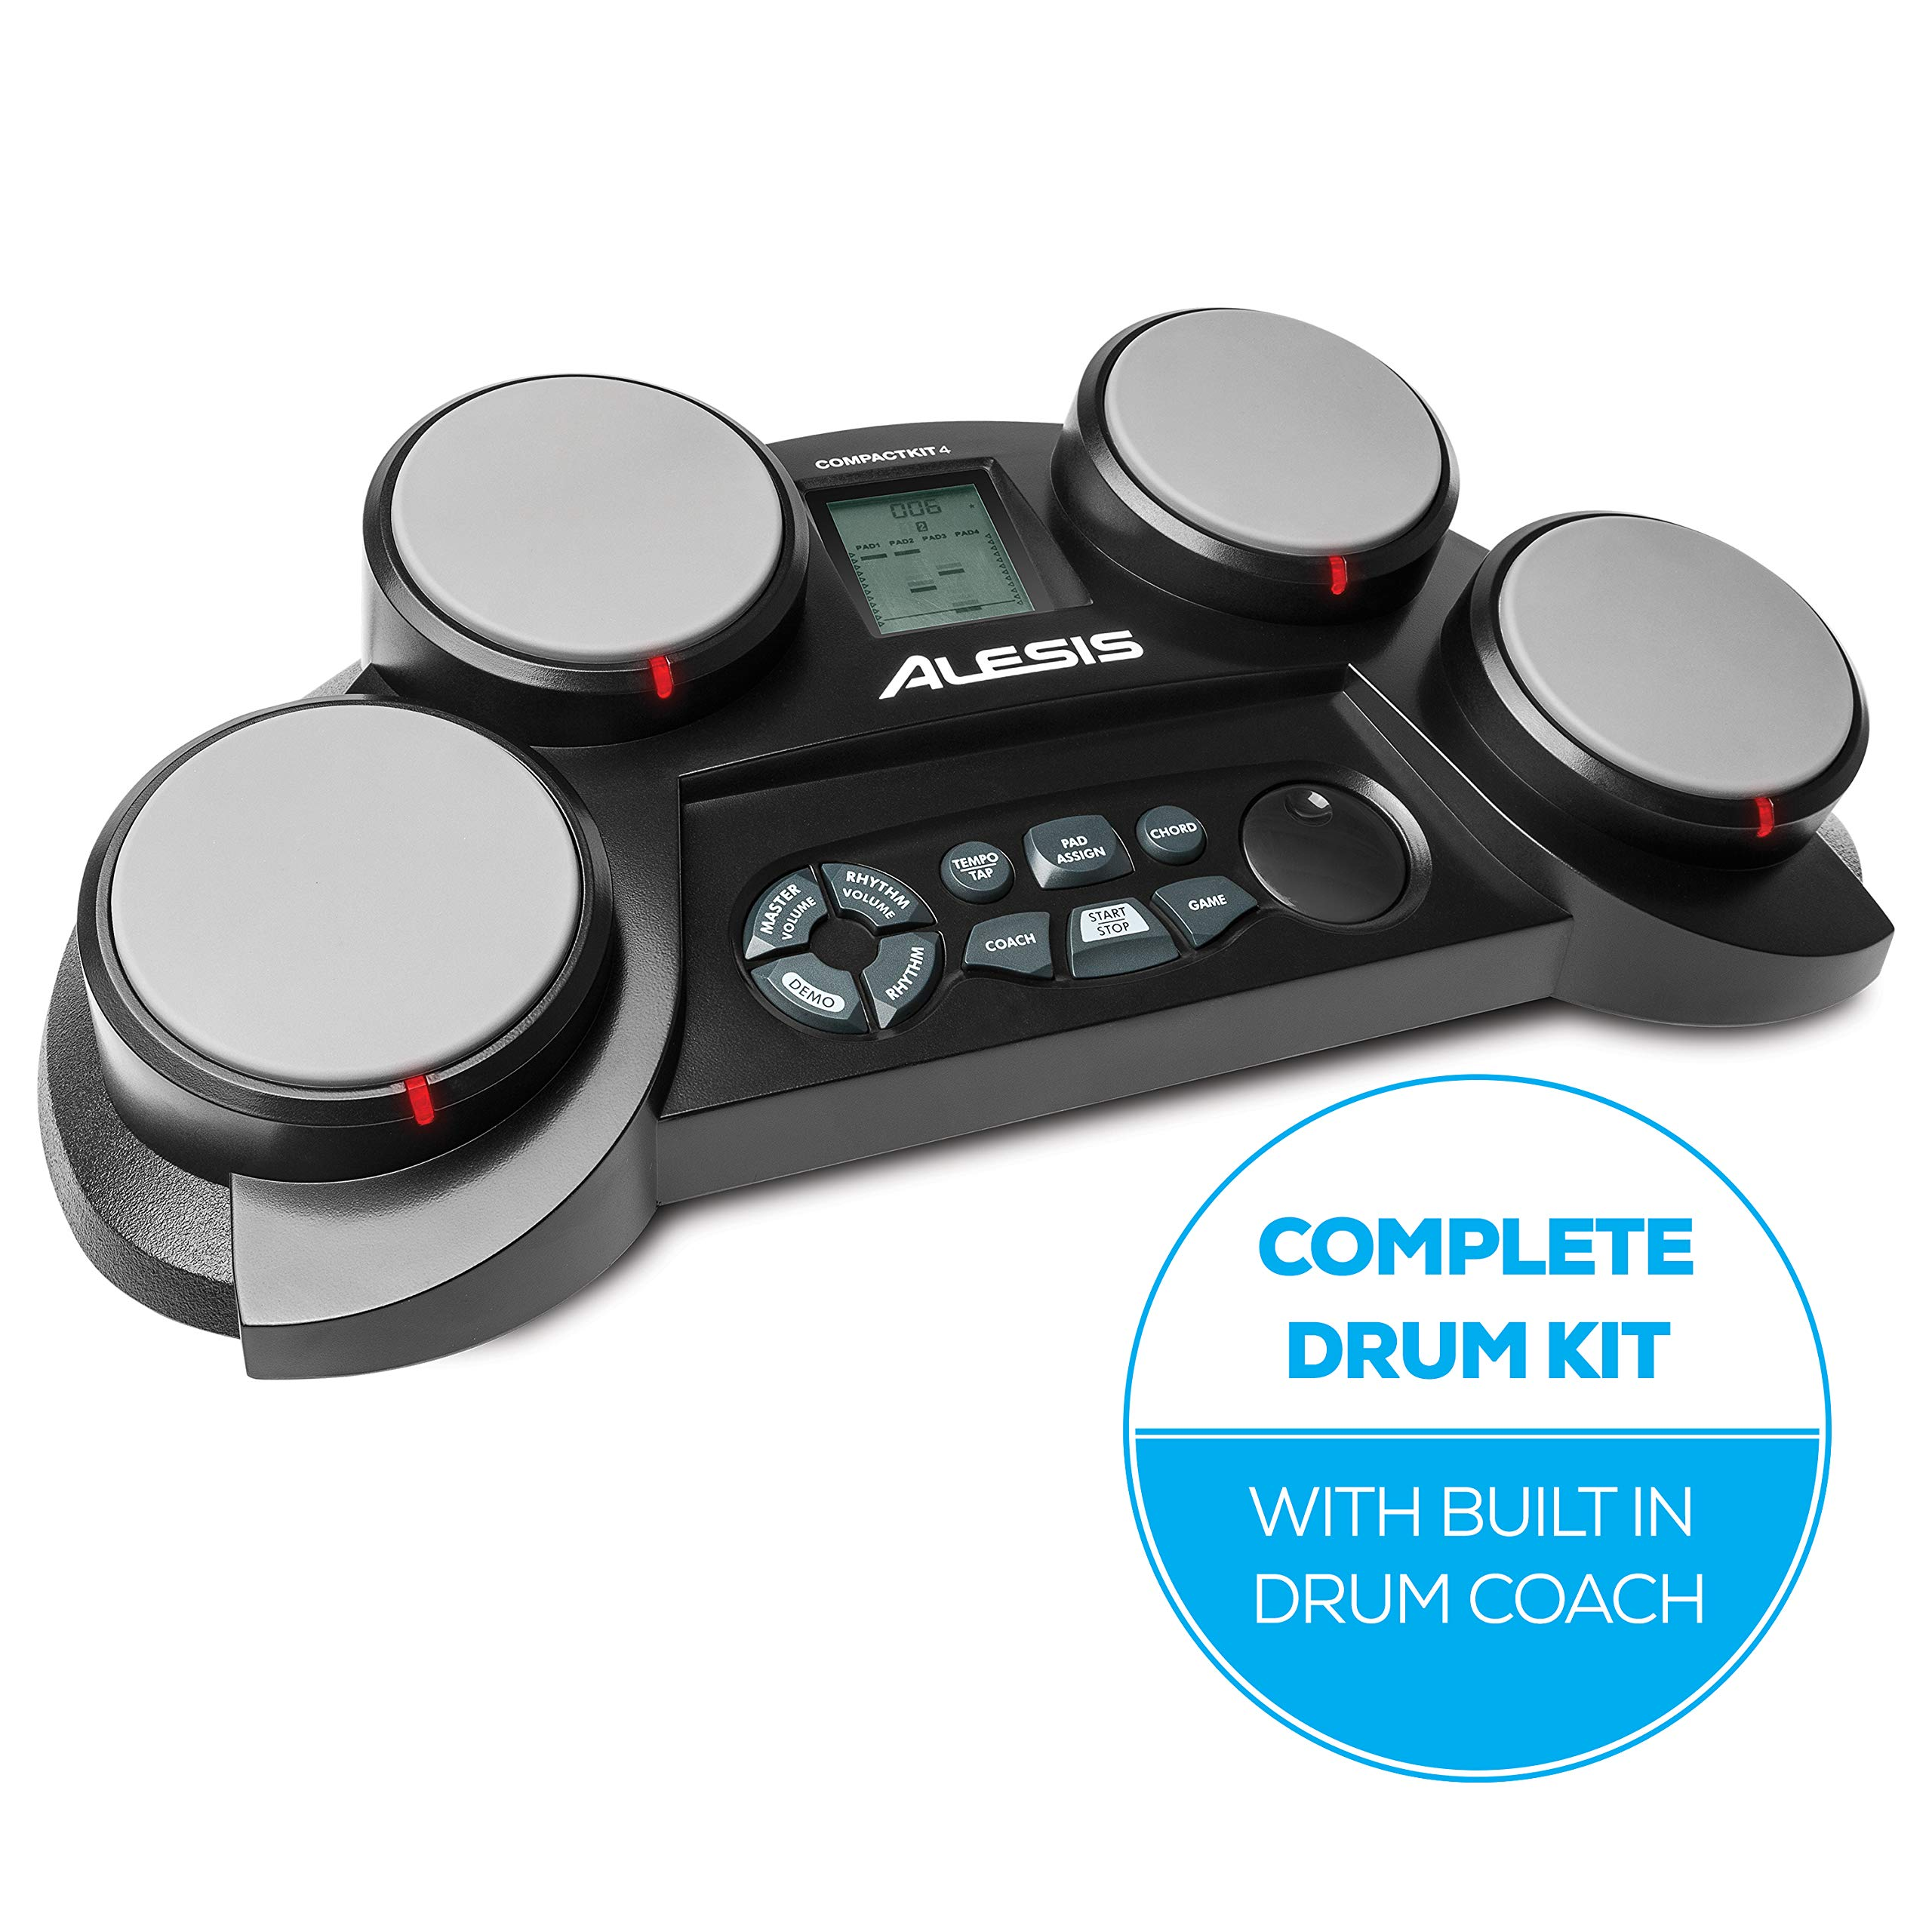 Alesis Portable Electronic Coaching Functions